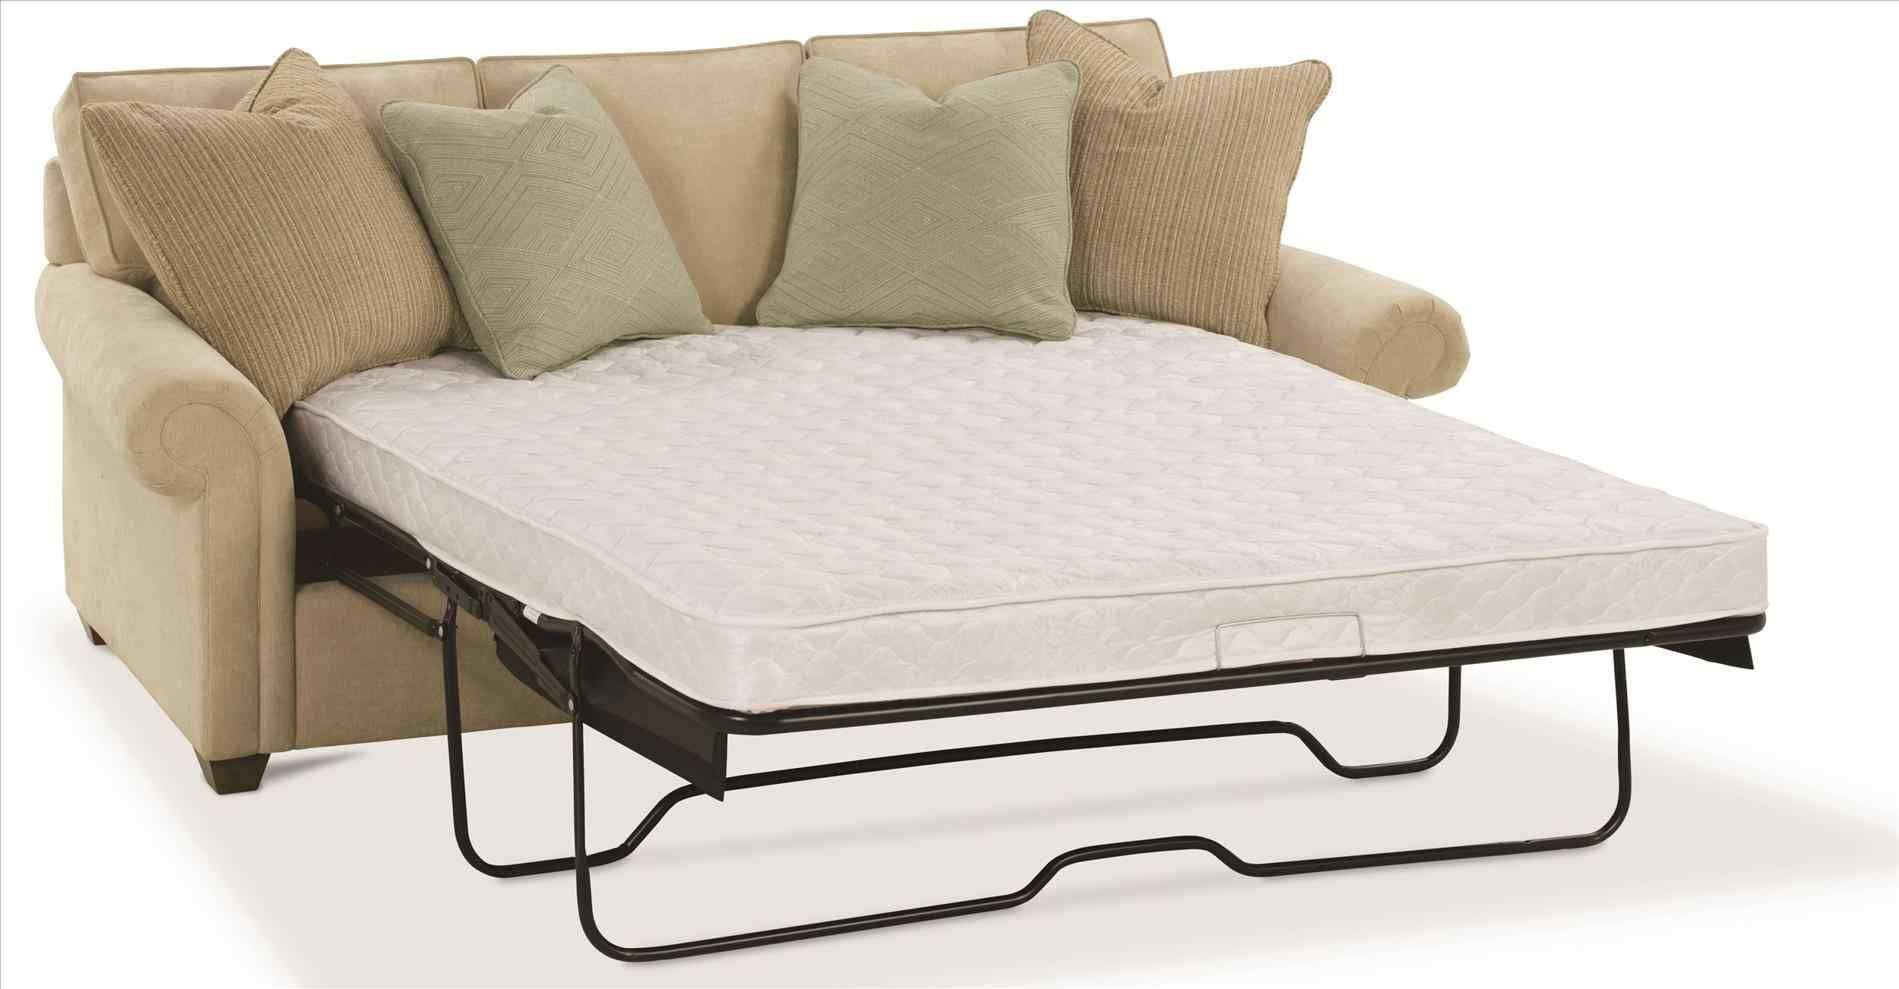 Intex Inflatable Sofa Kmart Brown Color Schemes Coleman Sleeper With Blow Up Mattress Twin Double